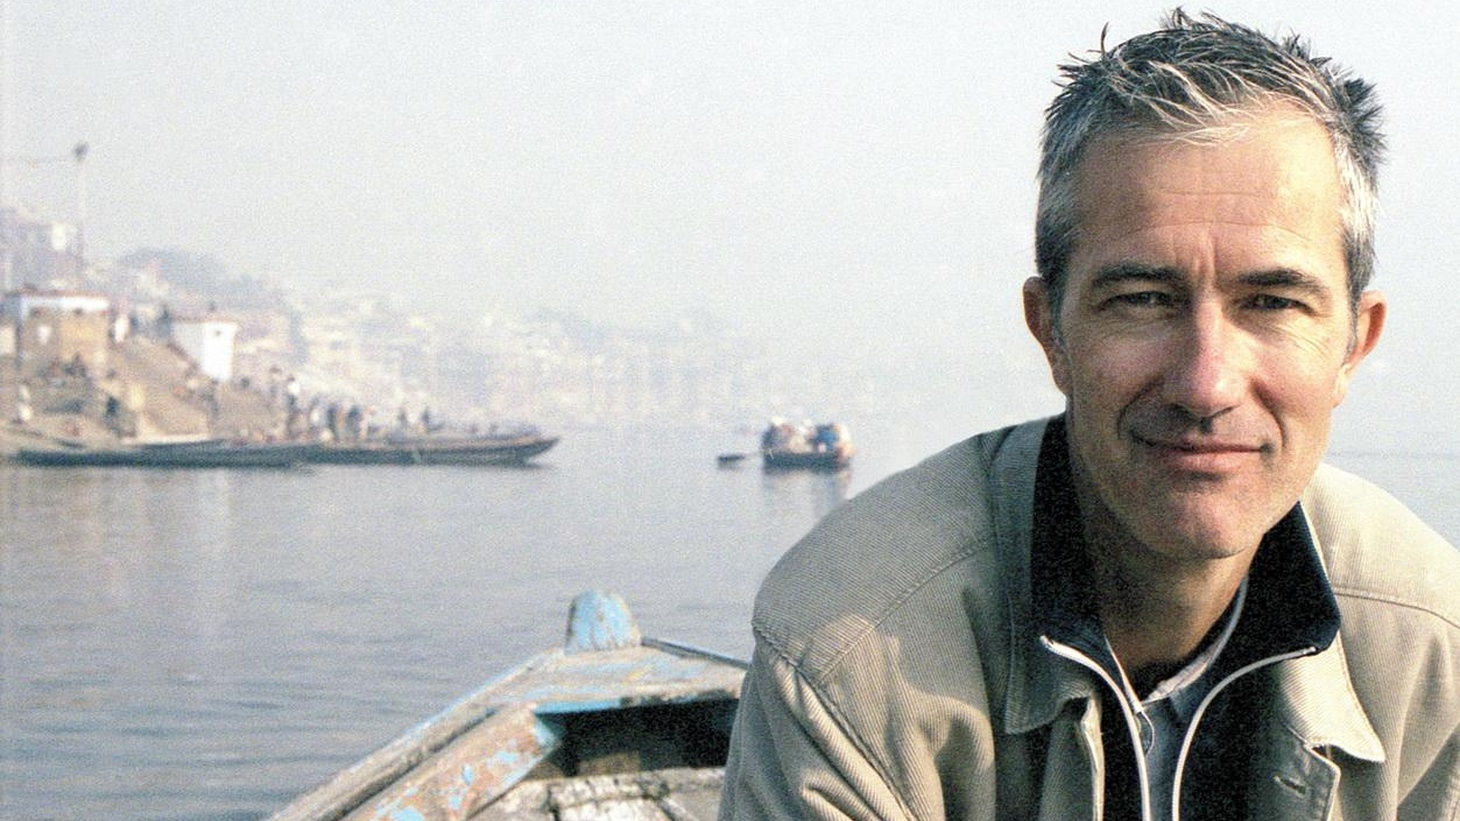 Novelist and essayist Geoff Dyer celebrates his first published essay in the New Yorker. He tells us how his amateur interest in jazz led him to write a book...